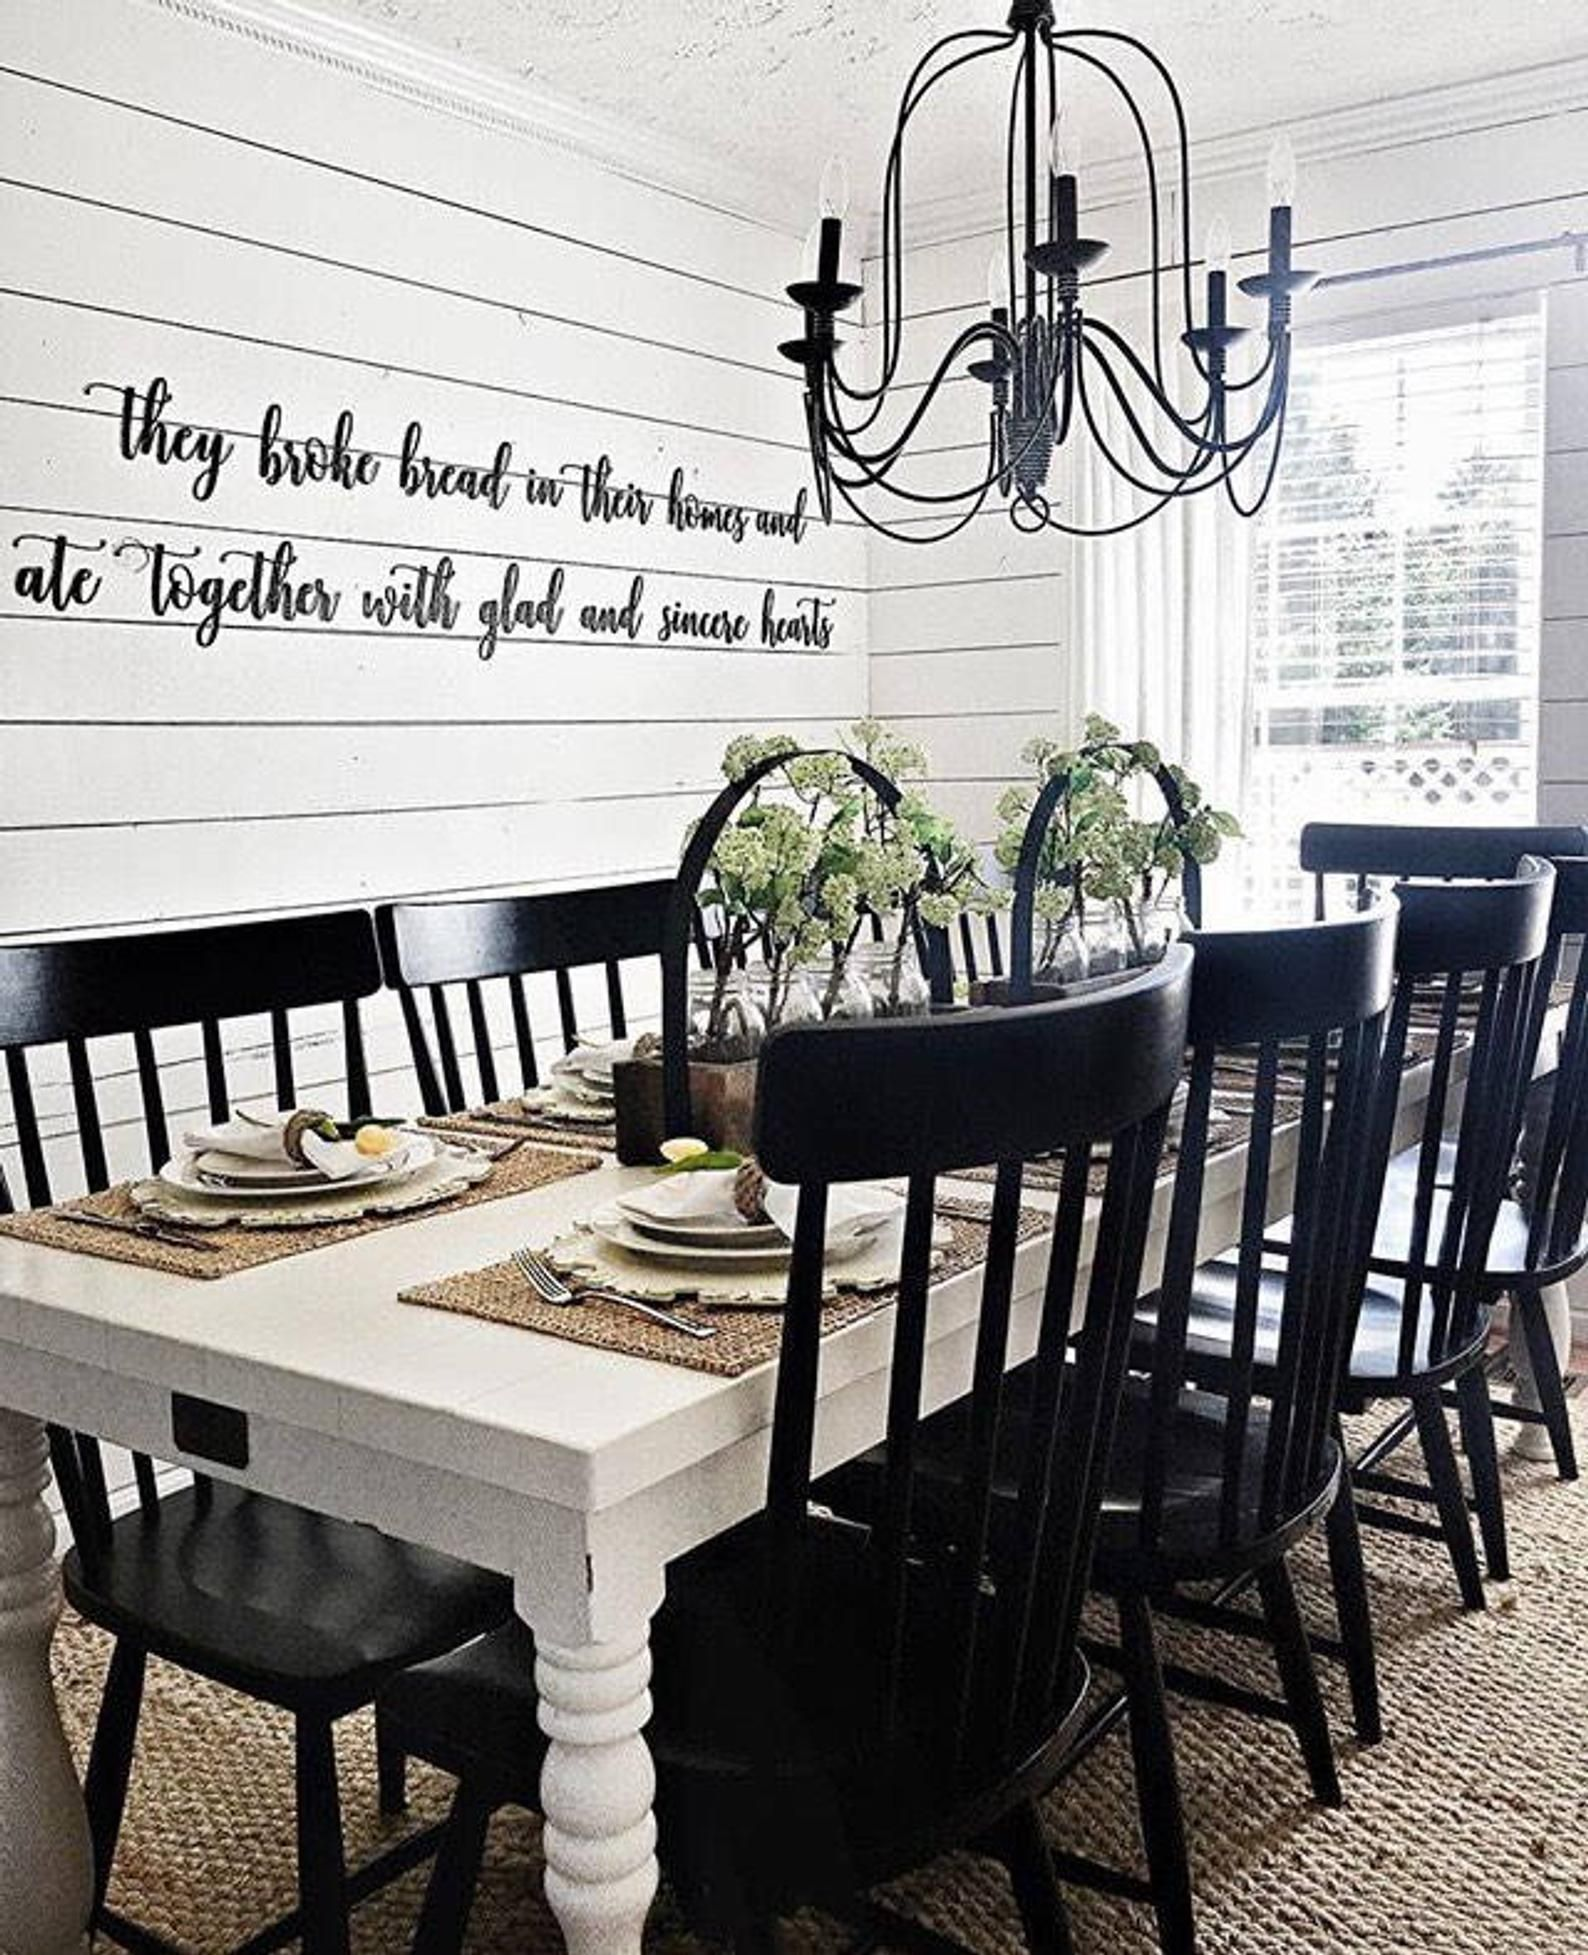 SALE! They Broke Bread in their Homes and ate Together with glad and sincere Hearts- Wall Art #farmhousediningroom